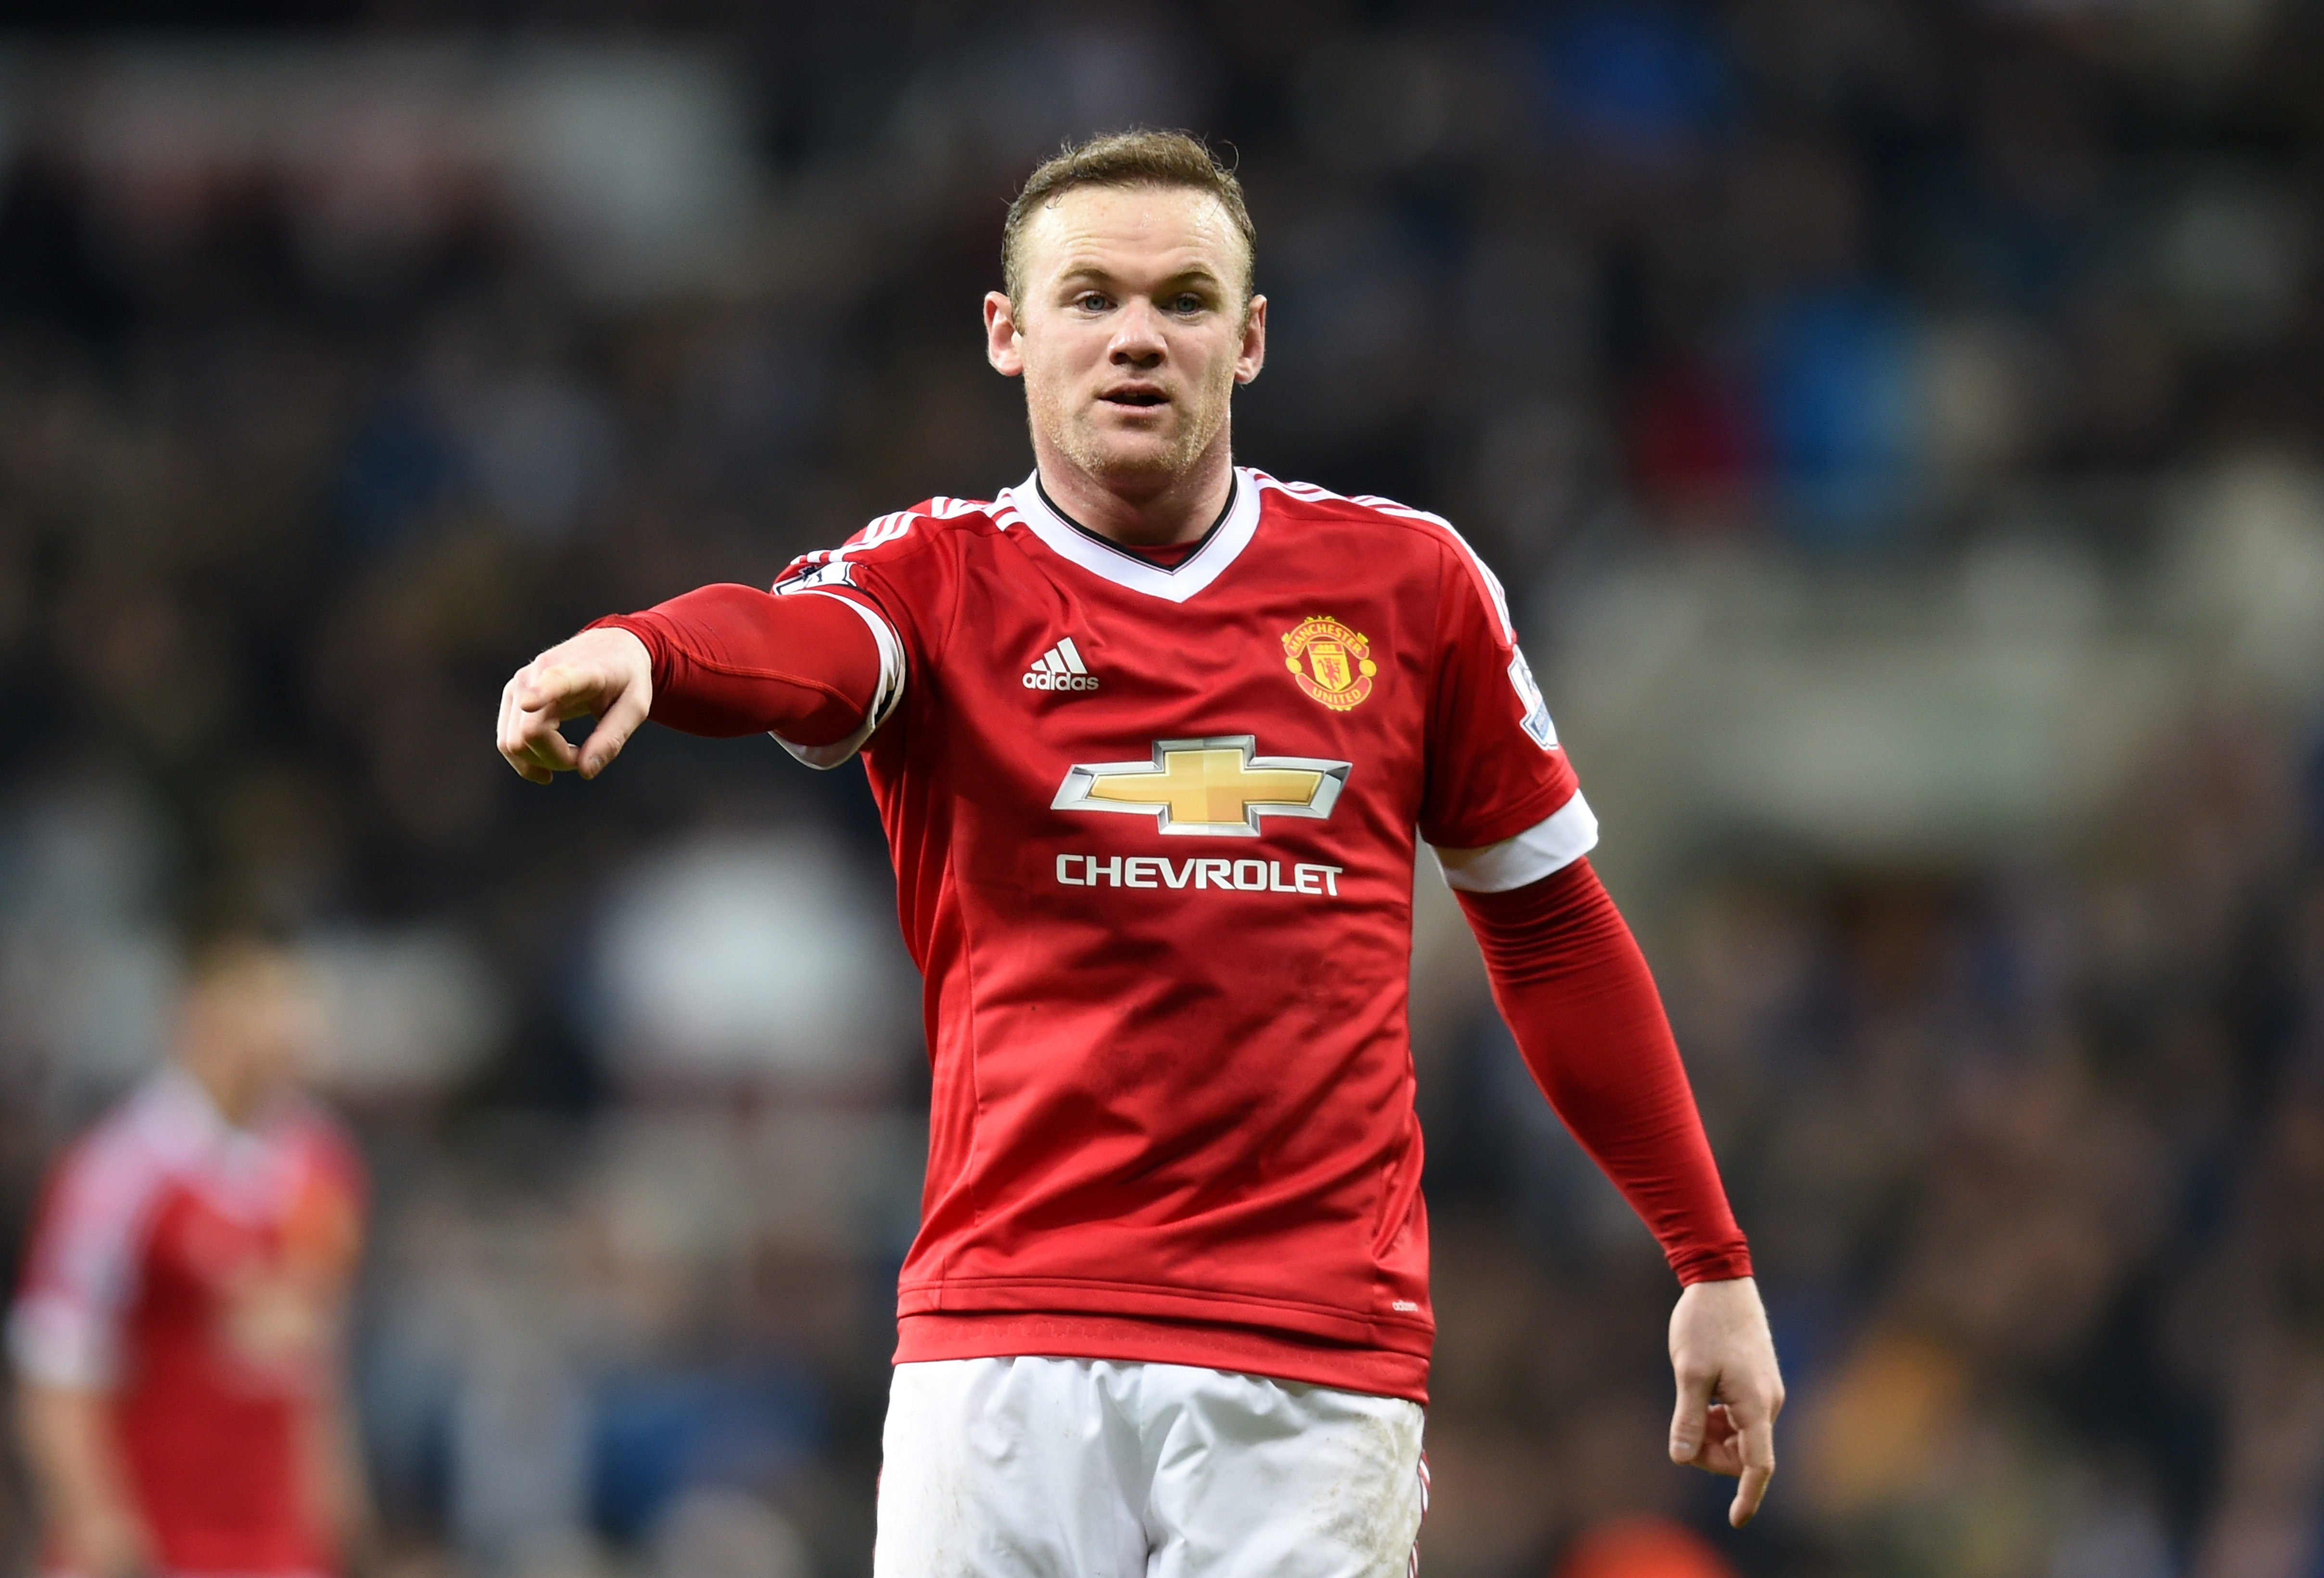 Paul Pogba's Manchester United transfer could help Wayne Rooney, says Dwight Yorke